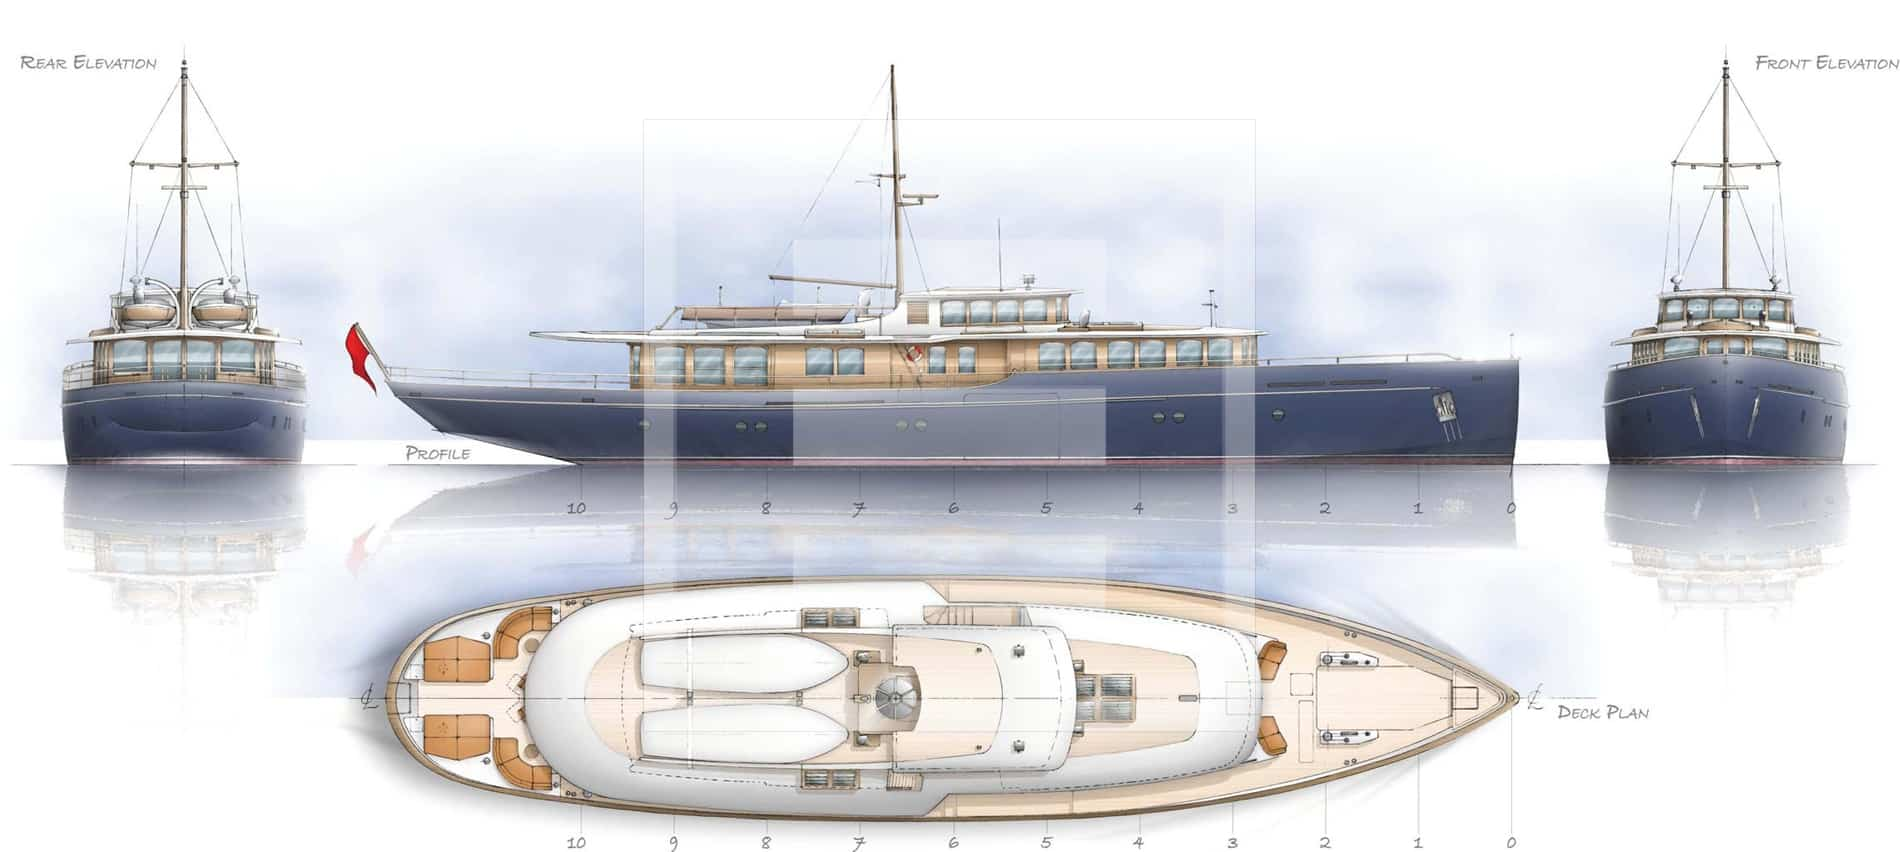 The Spirit Royaleyacht is designed principally for charter use in the Mediterranean